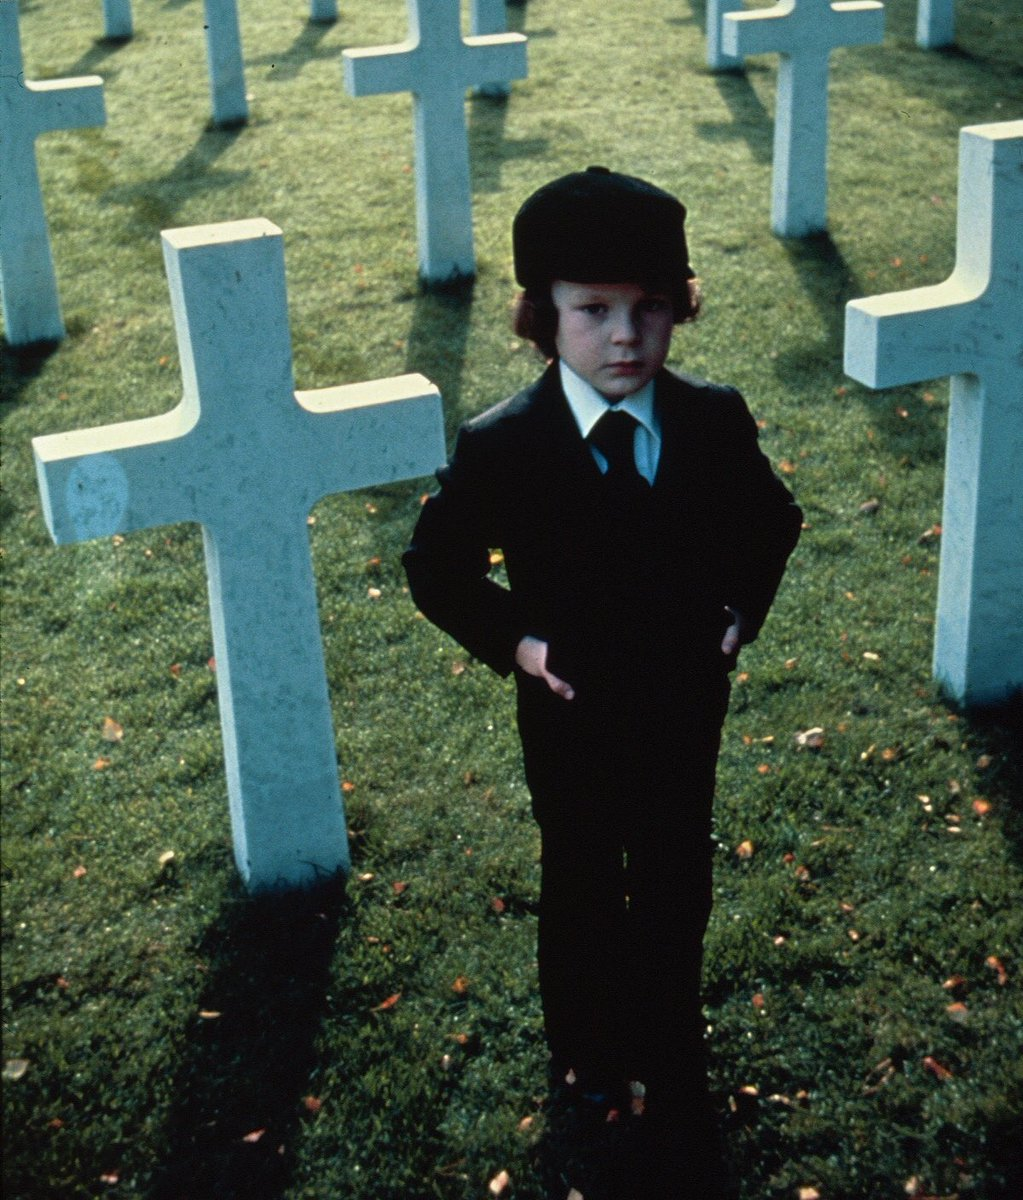 Wanna feel old? This is what the kid from The Omen looks like now